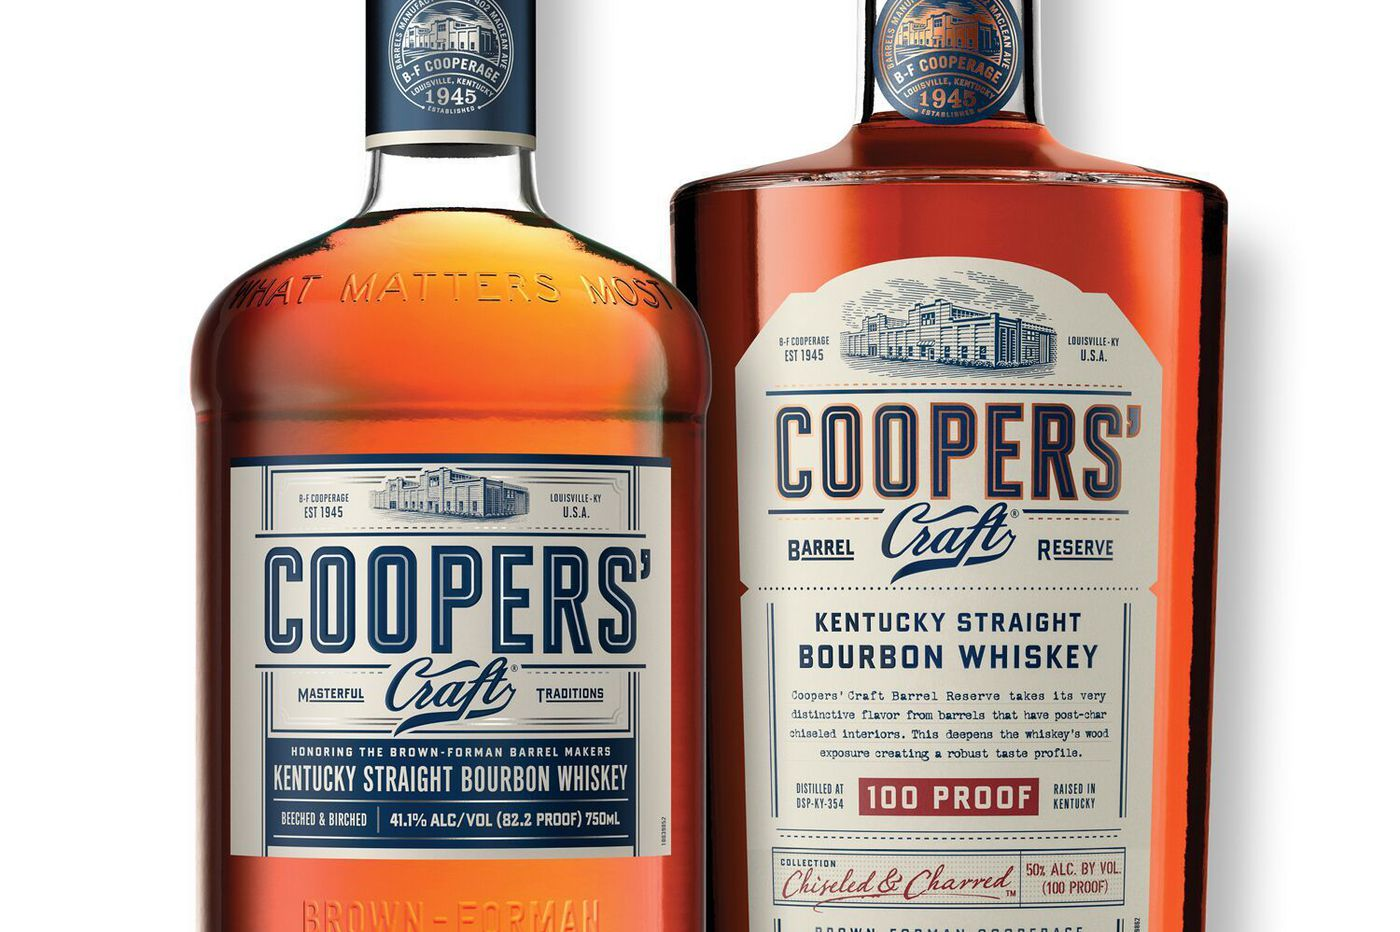 Now on Pennsylvania shelves, these Kentucky whiskeys